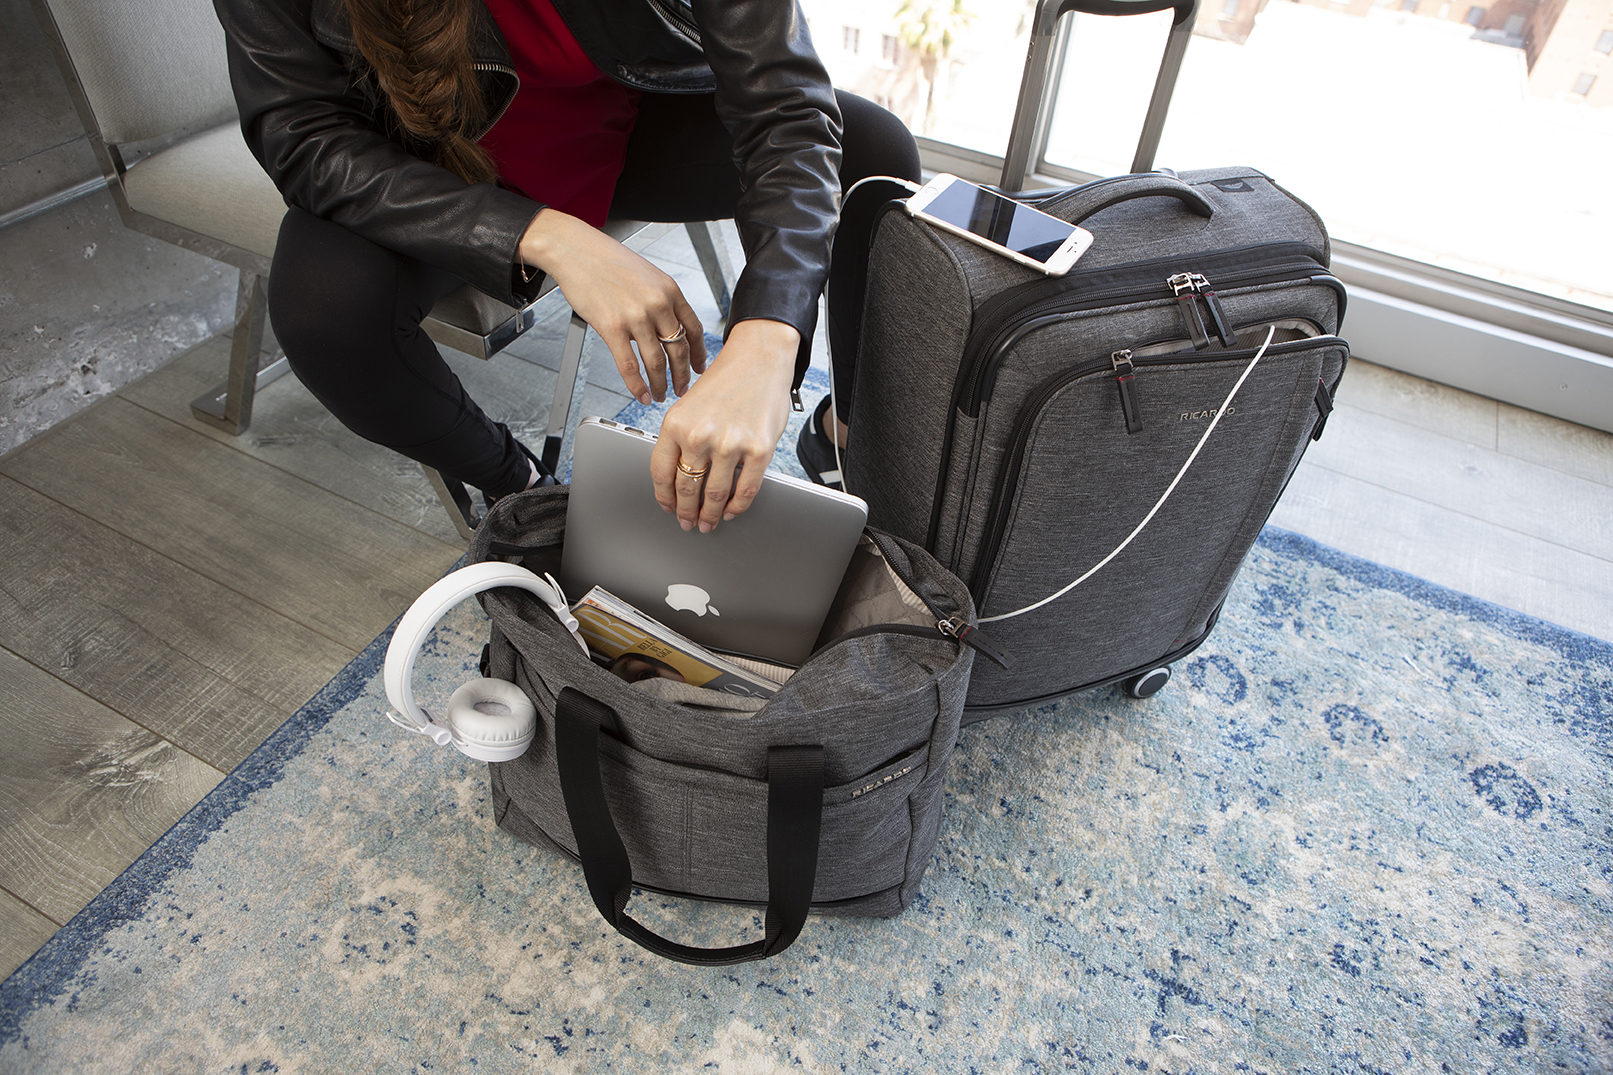 Woman placing laptop inside tote